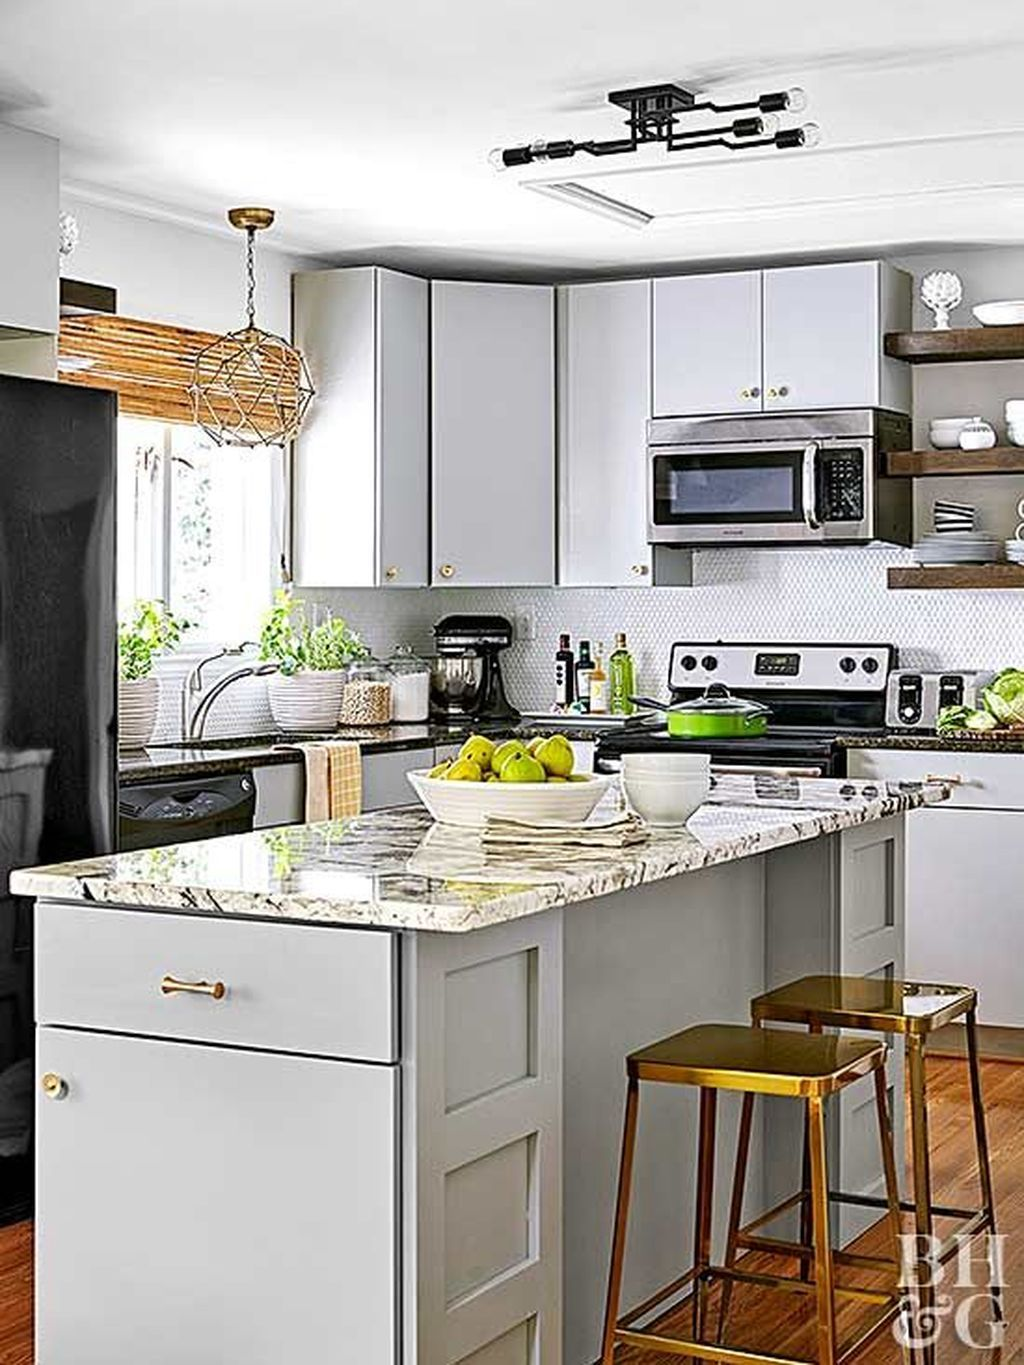 30 Cool Kitchen Designs Idas With Tones Of Vibrant Colors That You Must See Design Color Colour Combination Country